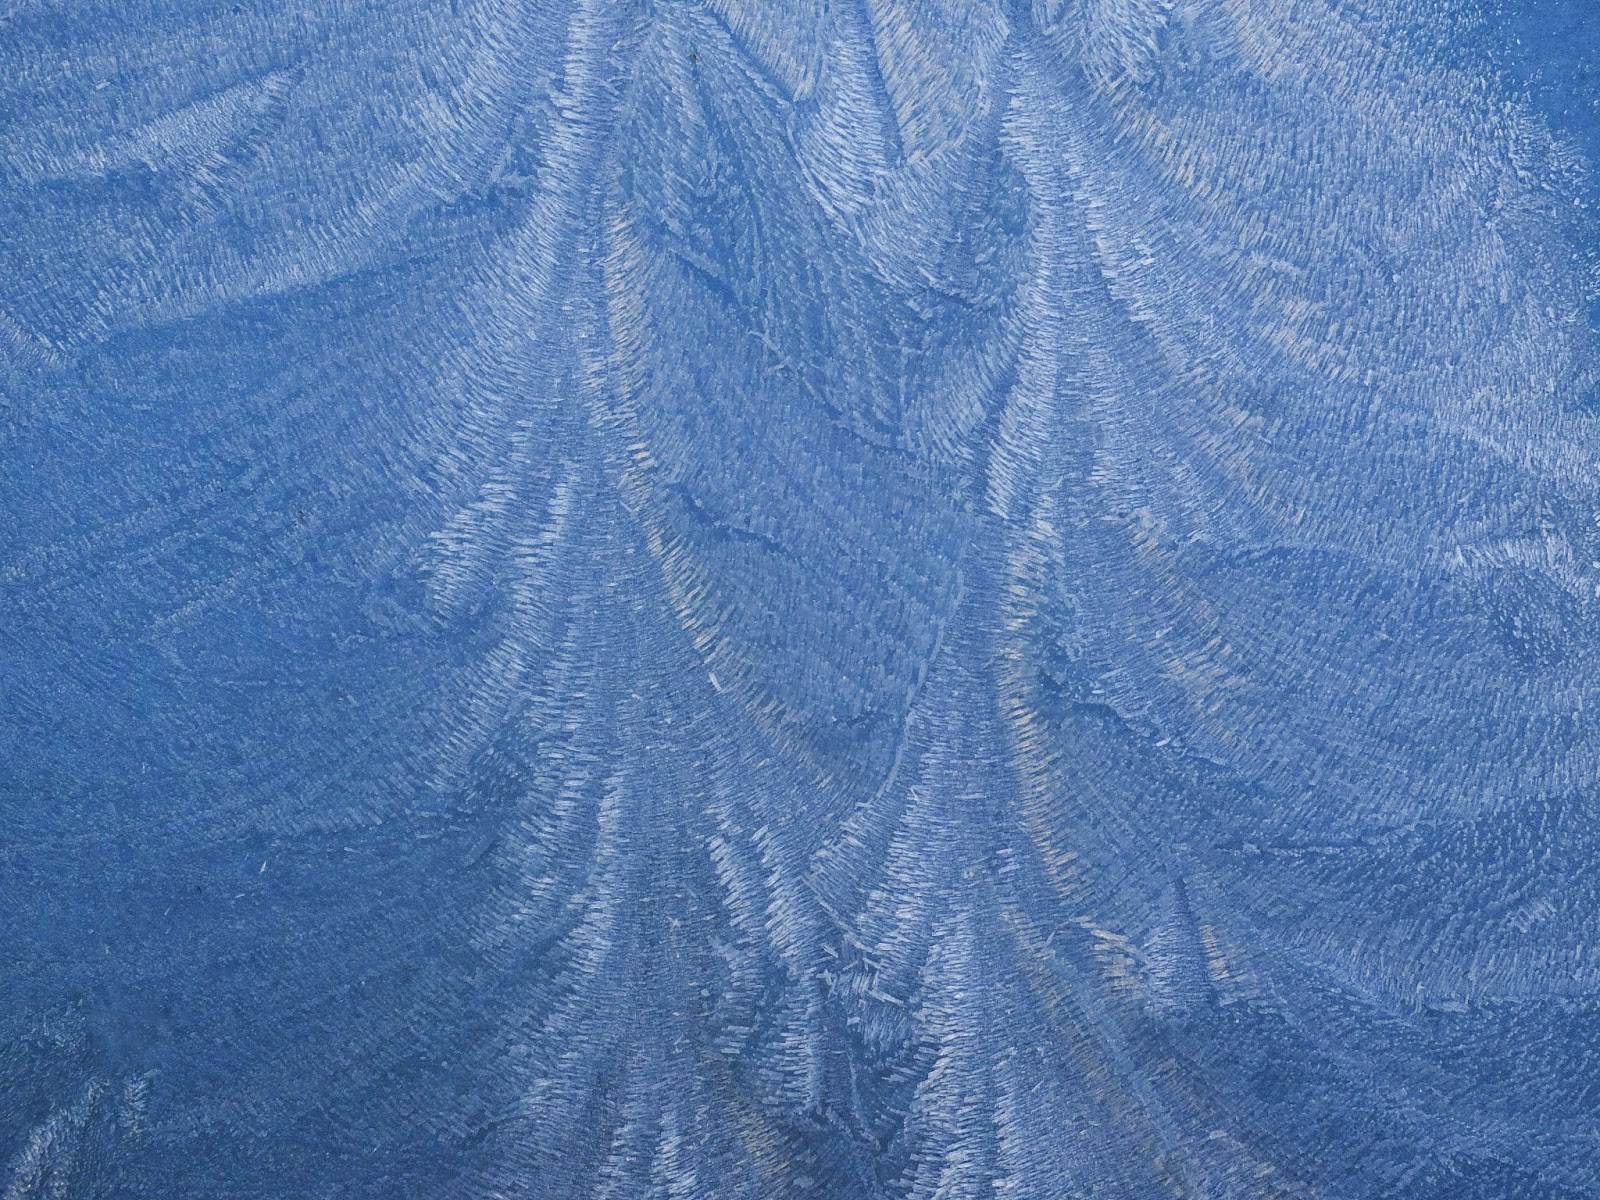 Mother's Nature design of frost on glass.